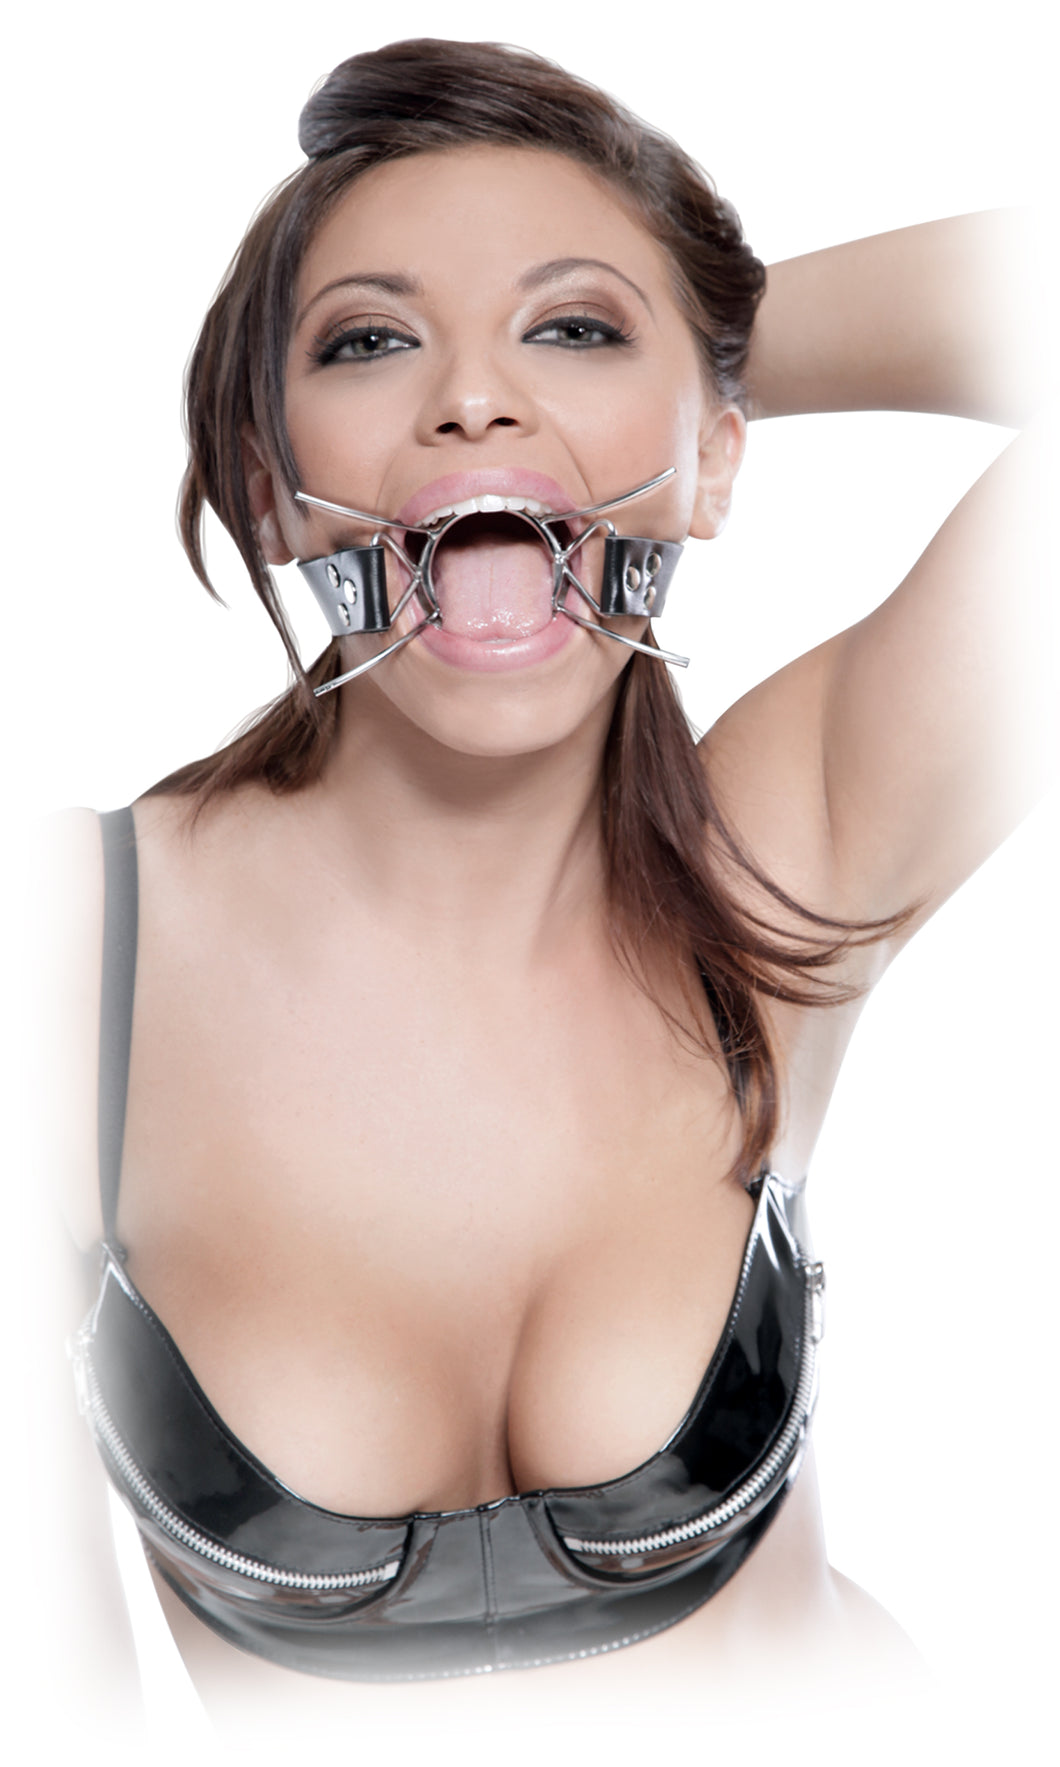 Fetish Fantasy Extreme Spider Gag - My sheree and More